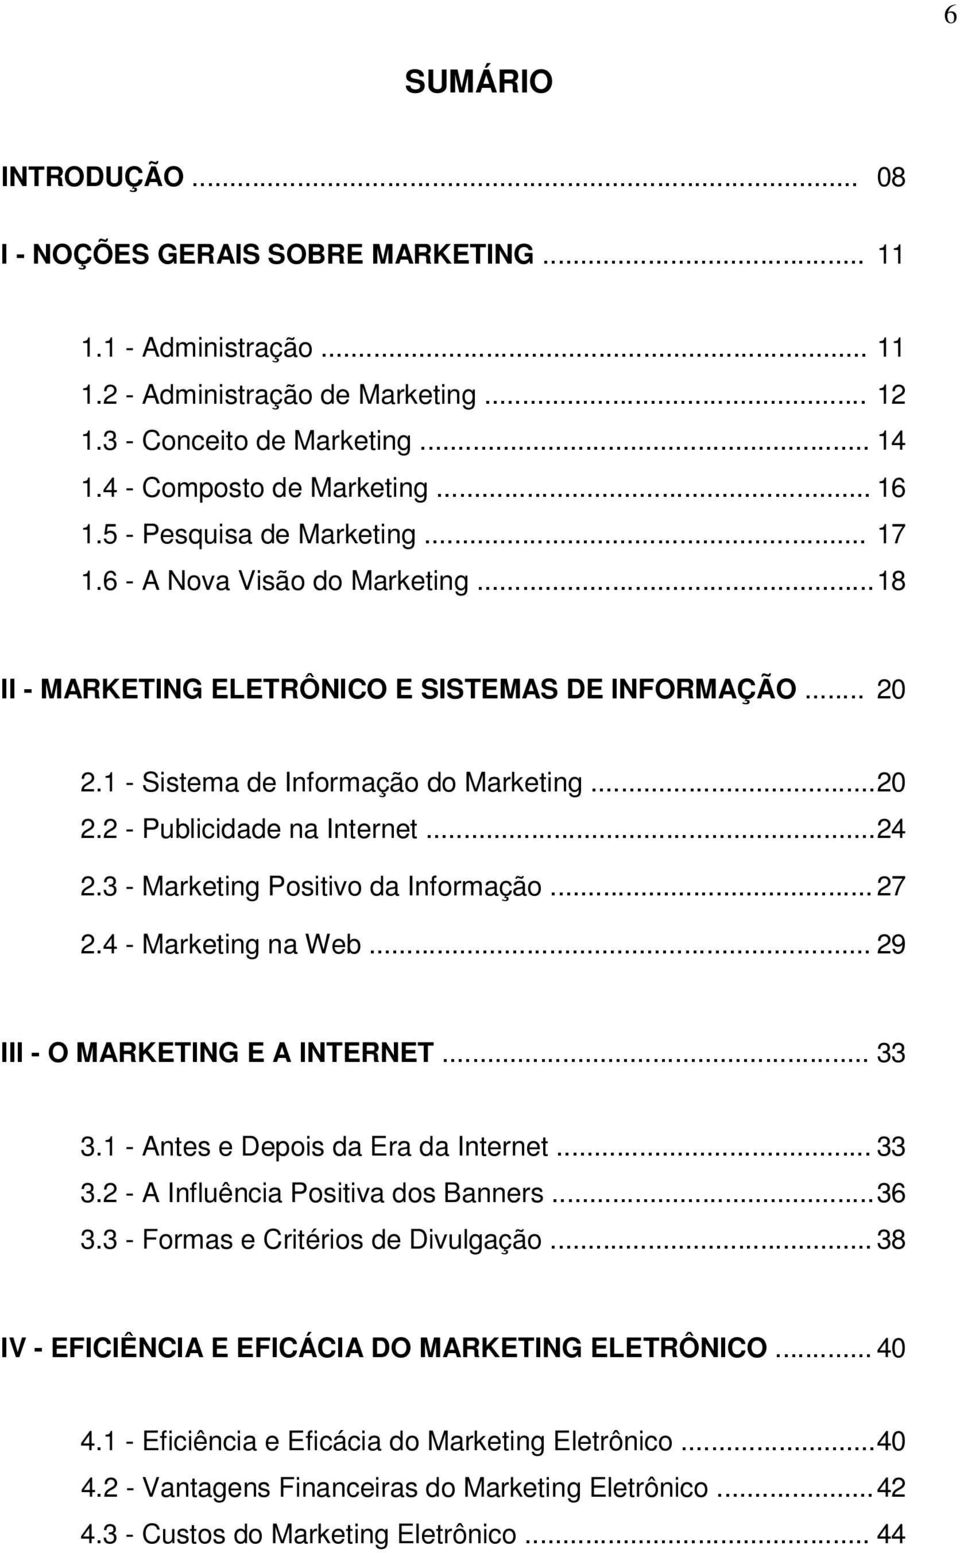 .. 24 2.3 - Marketing Positivo da Informação... 27 2.4 - Marketing na Web... 29 III - O MARKETING E A INTERNET... 33 3.1 - Antes e Depois da Era da Internet... 33 3.2 - A Influência Positiva dos Banners.